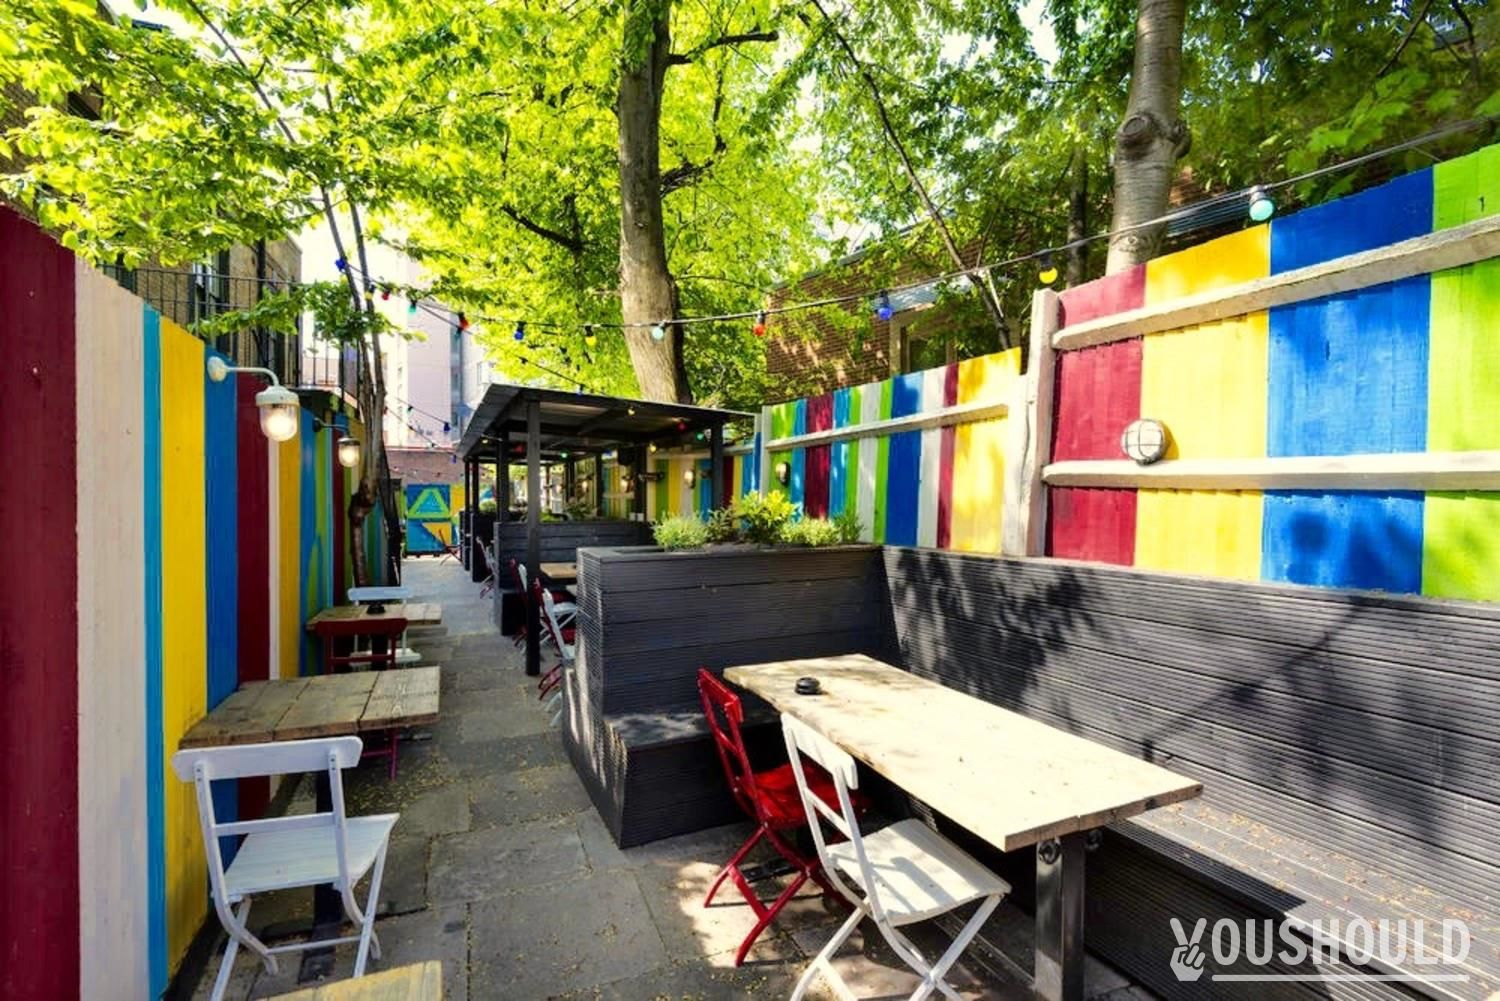 Top 12 bars to celebrate a birthday party in August in London